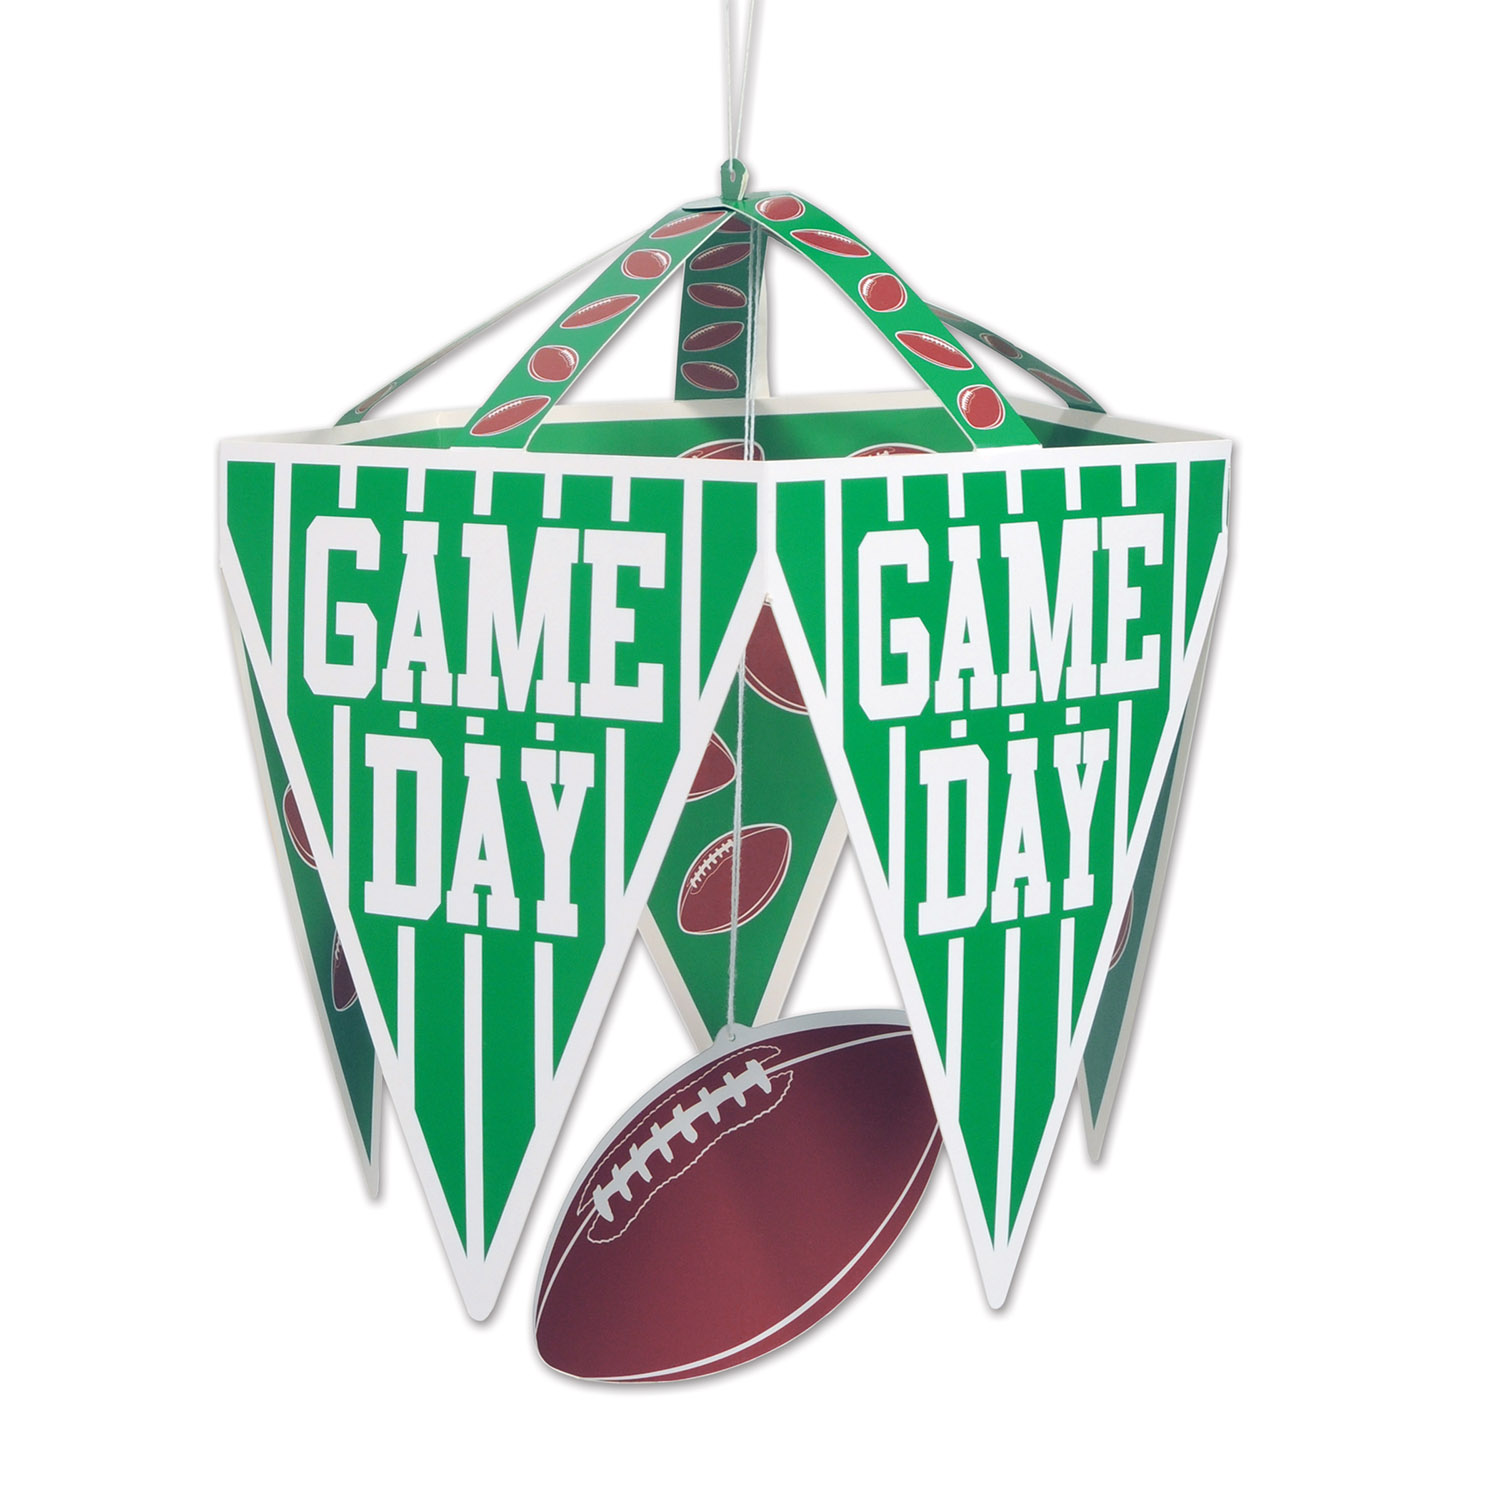 Game Day Pennant Chandelier (Pack of 12) Game Day, Football Pennant Chandelier, Inexpensive Hanging Decor, Wholesale supplies, Cheap Football Decorations, Football ideas